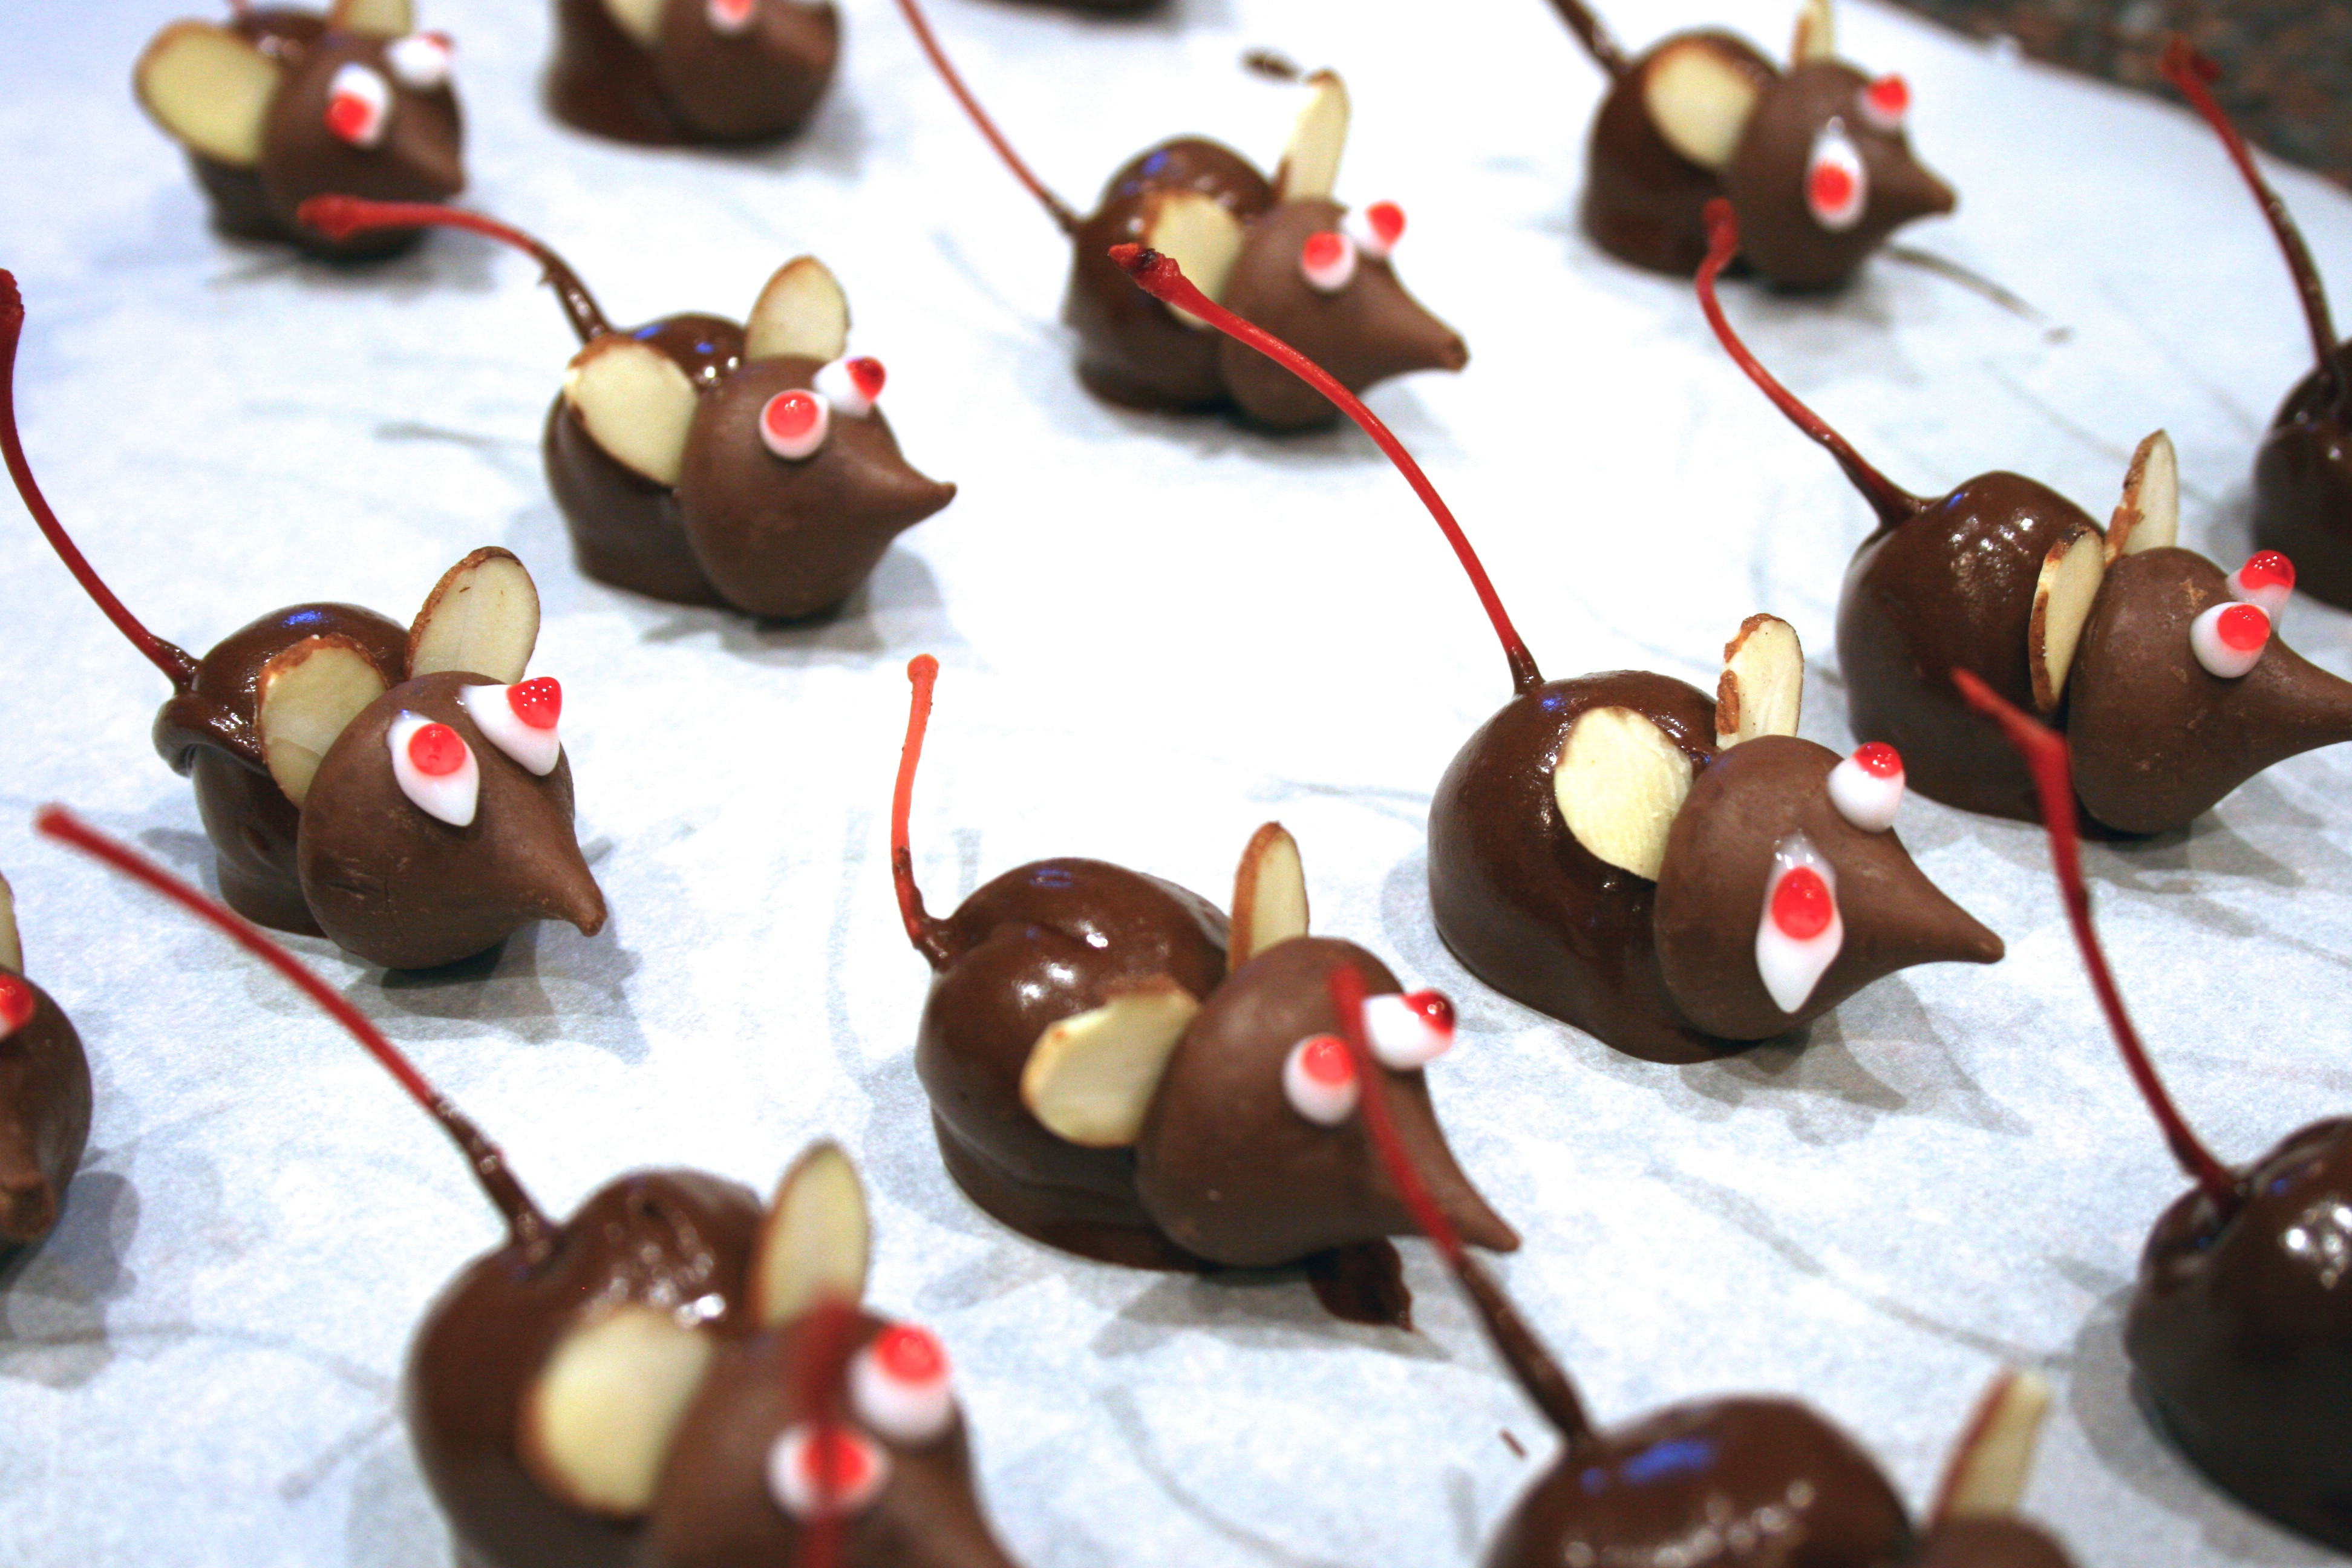 Christmas Mice Candy  Chocolate Cherry Mice Candy Recipe Finding Our Way Now